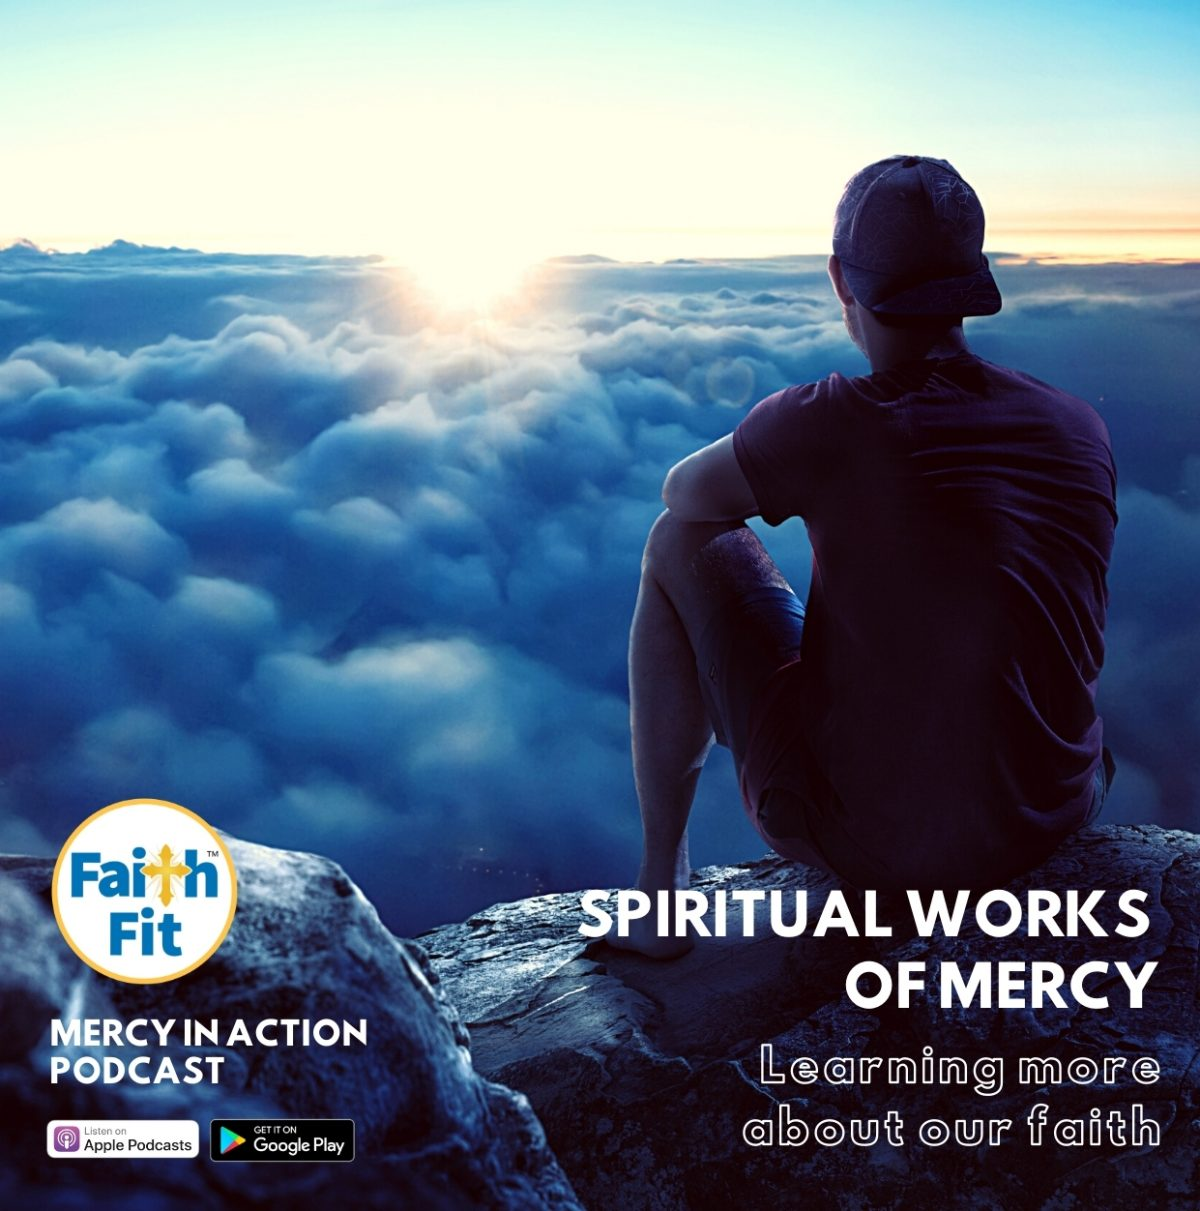 #18: Spiritual Works Of Mercy: Learning more about our faith